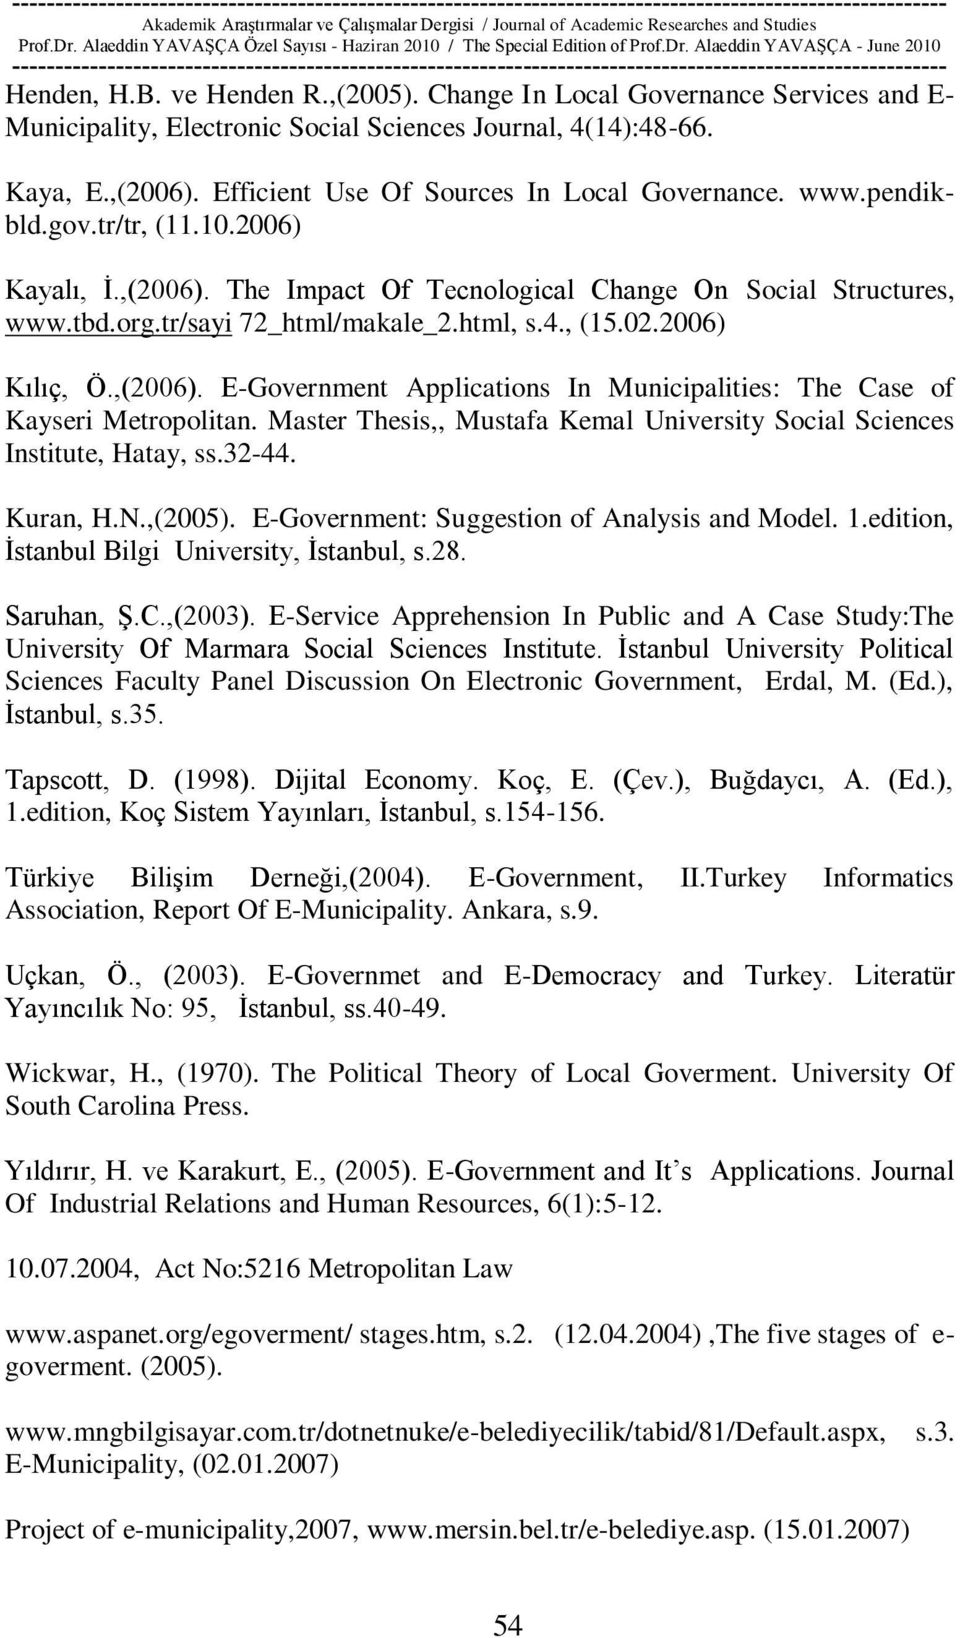 html, s.4., (15.02.2006) Kılıç, Ö.,(2006). E-Government Applications In Municipalities: The Case of Kayseri Metropolitan. Master Thesis,, Mustafa Kemal University Social Sciences Institute, Hatay, ss.